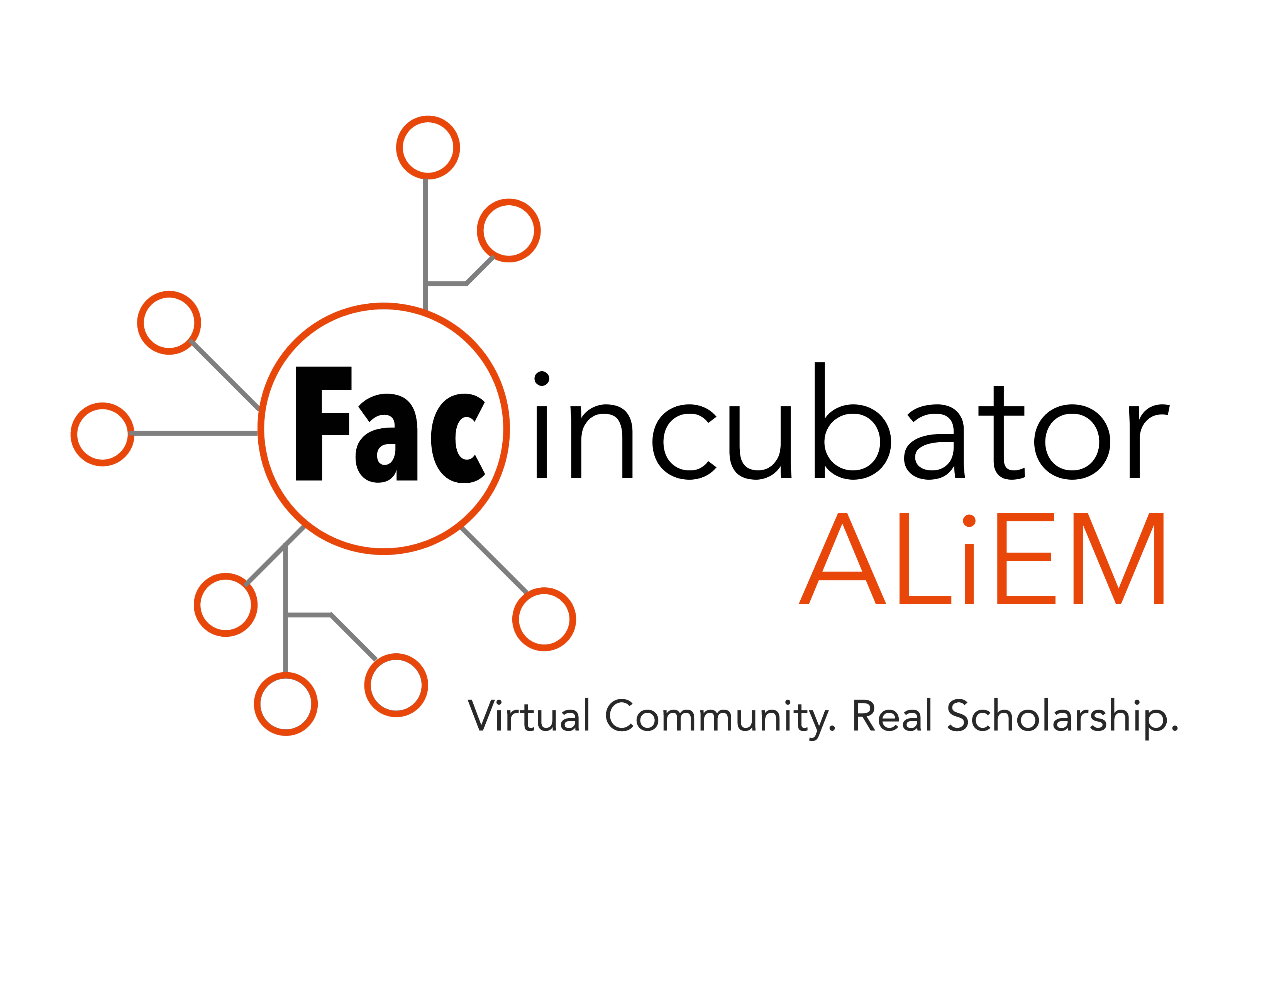 C:\Users\Mike\Desktop\Facincubator_logo4.png